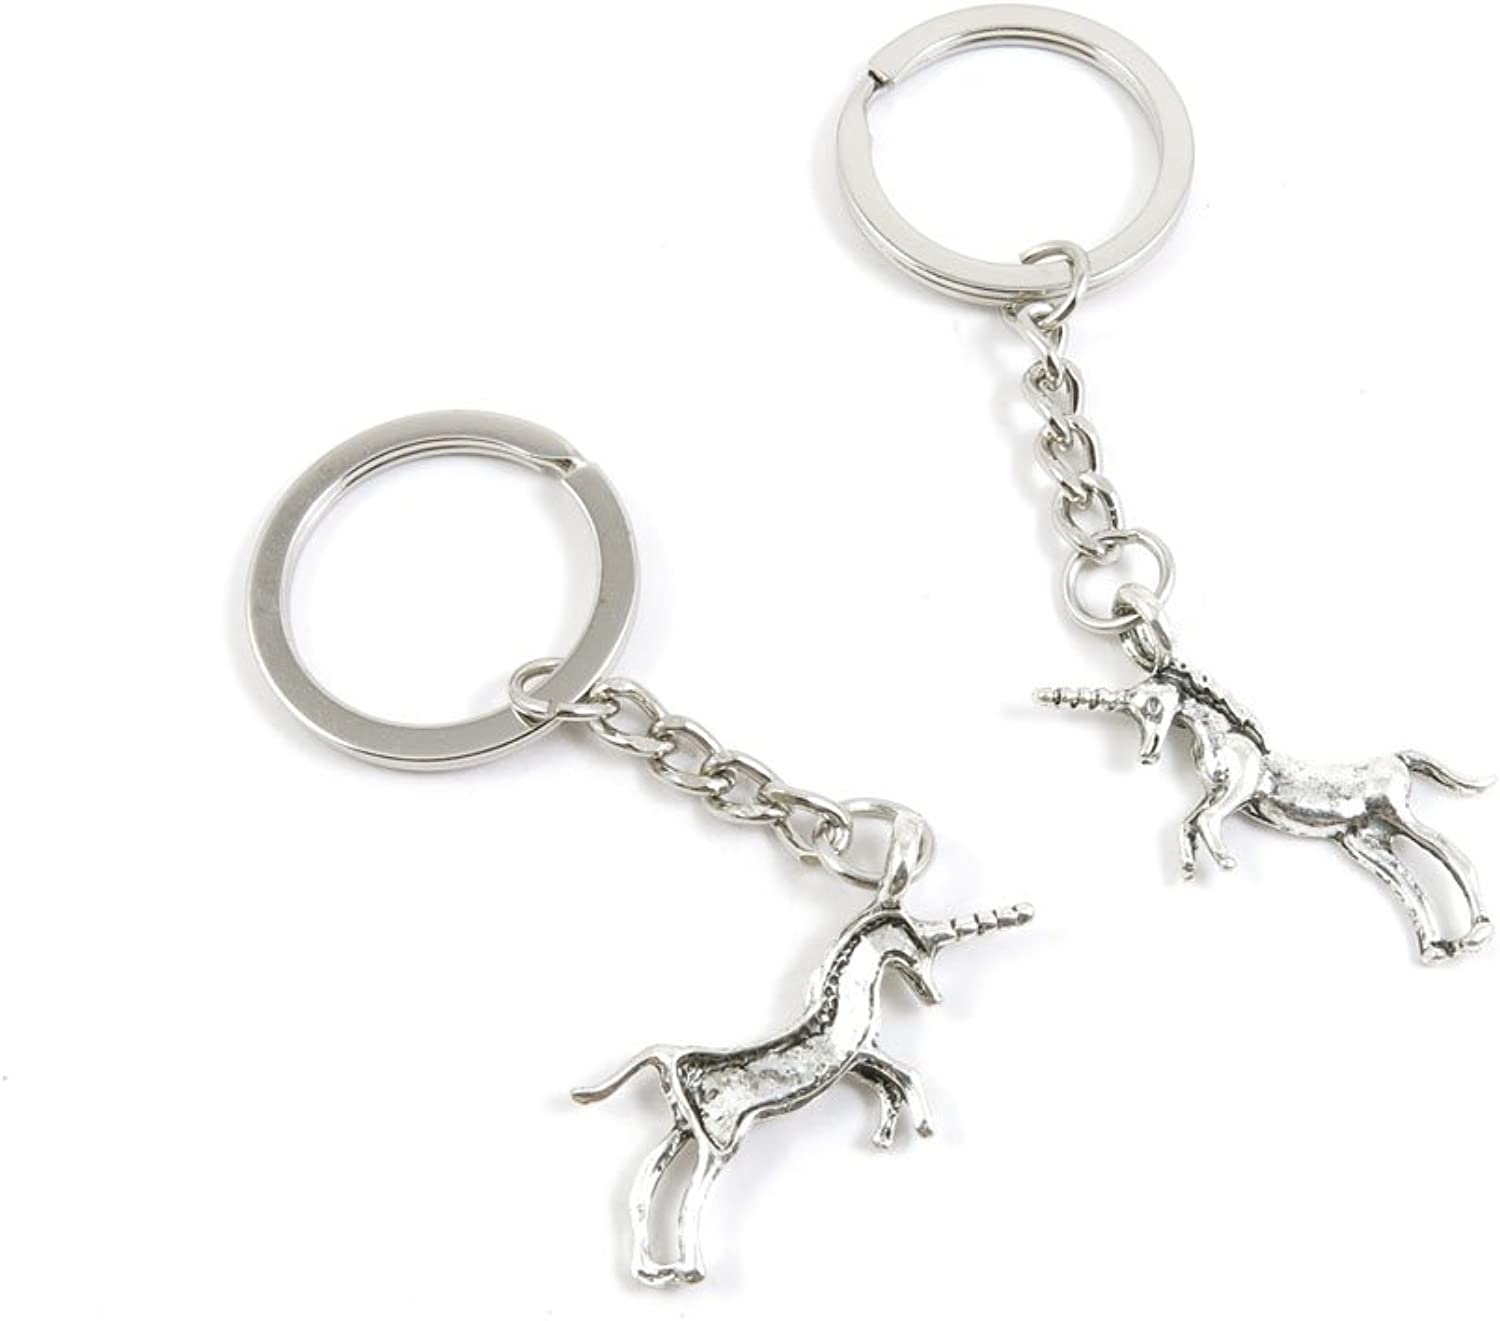 100 Pieces Keychain Keyring Door Car Key Chain Ring Tag Charms Bulk Supply Jewelry Making Clasp Findings J1WQ3R Unicorn